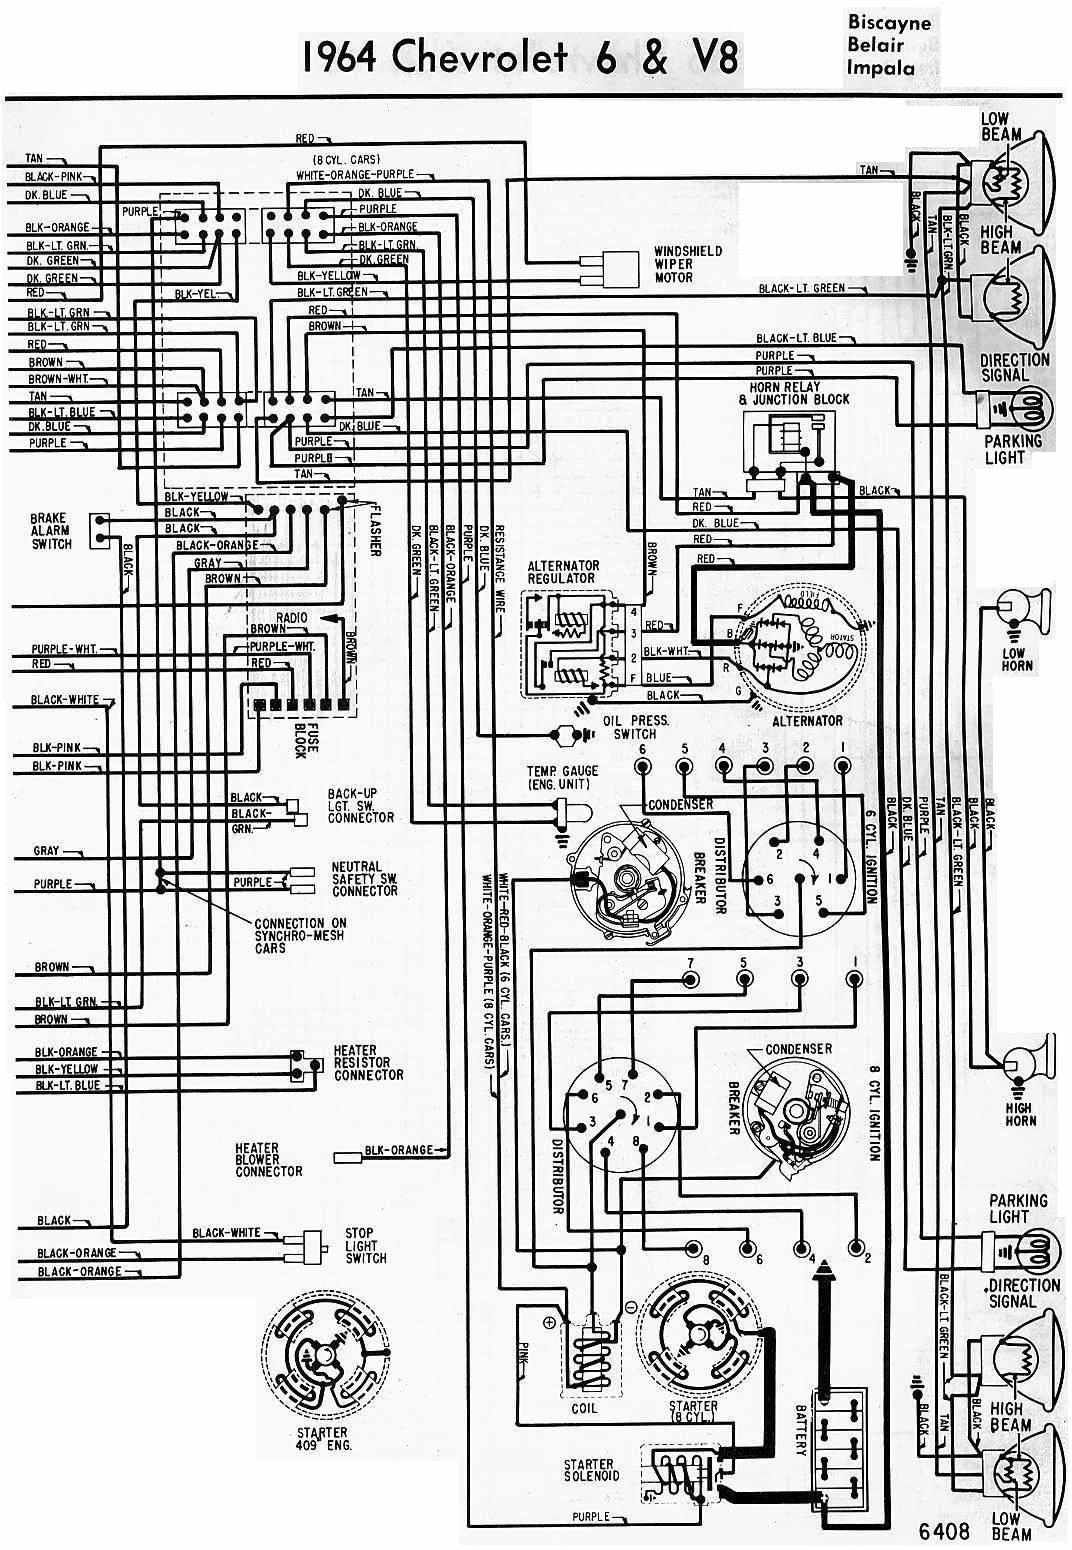 64 Impala Wiring Harness - Ecs.dappermanandvan.uk • on 1964 impala flywheel, 2007 impala parts diagram, 1964 impala brochure, 1964 impala air cleaner, 1964 impala motor, 1964 impala horn, 1964 impala interior, 1964 impala steering, 1964 impala firewall, 1964 impala wagon, 1964 impala repair, 1964 impala super sport, 1964 impala hydraulics, 1964 impala clock, 1964 impala brakes, 1964 impala ignition switch, 1964 impala transmission, 1964 impala distributor, 1964 impala headlights, 1964 impala suspension,